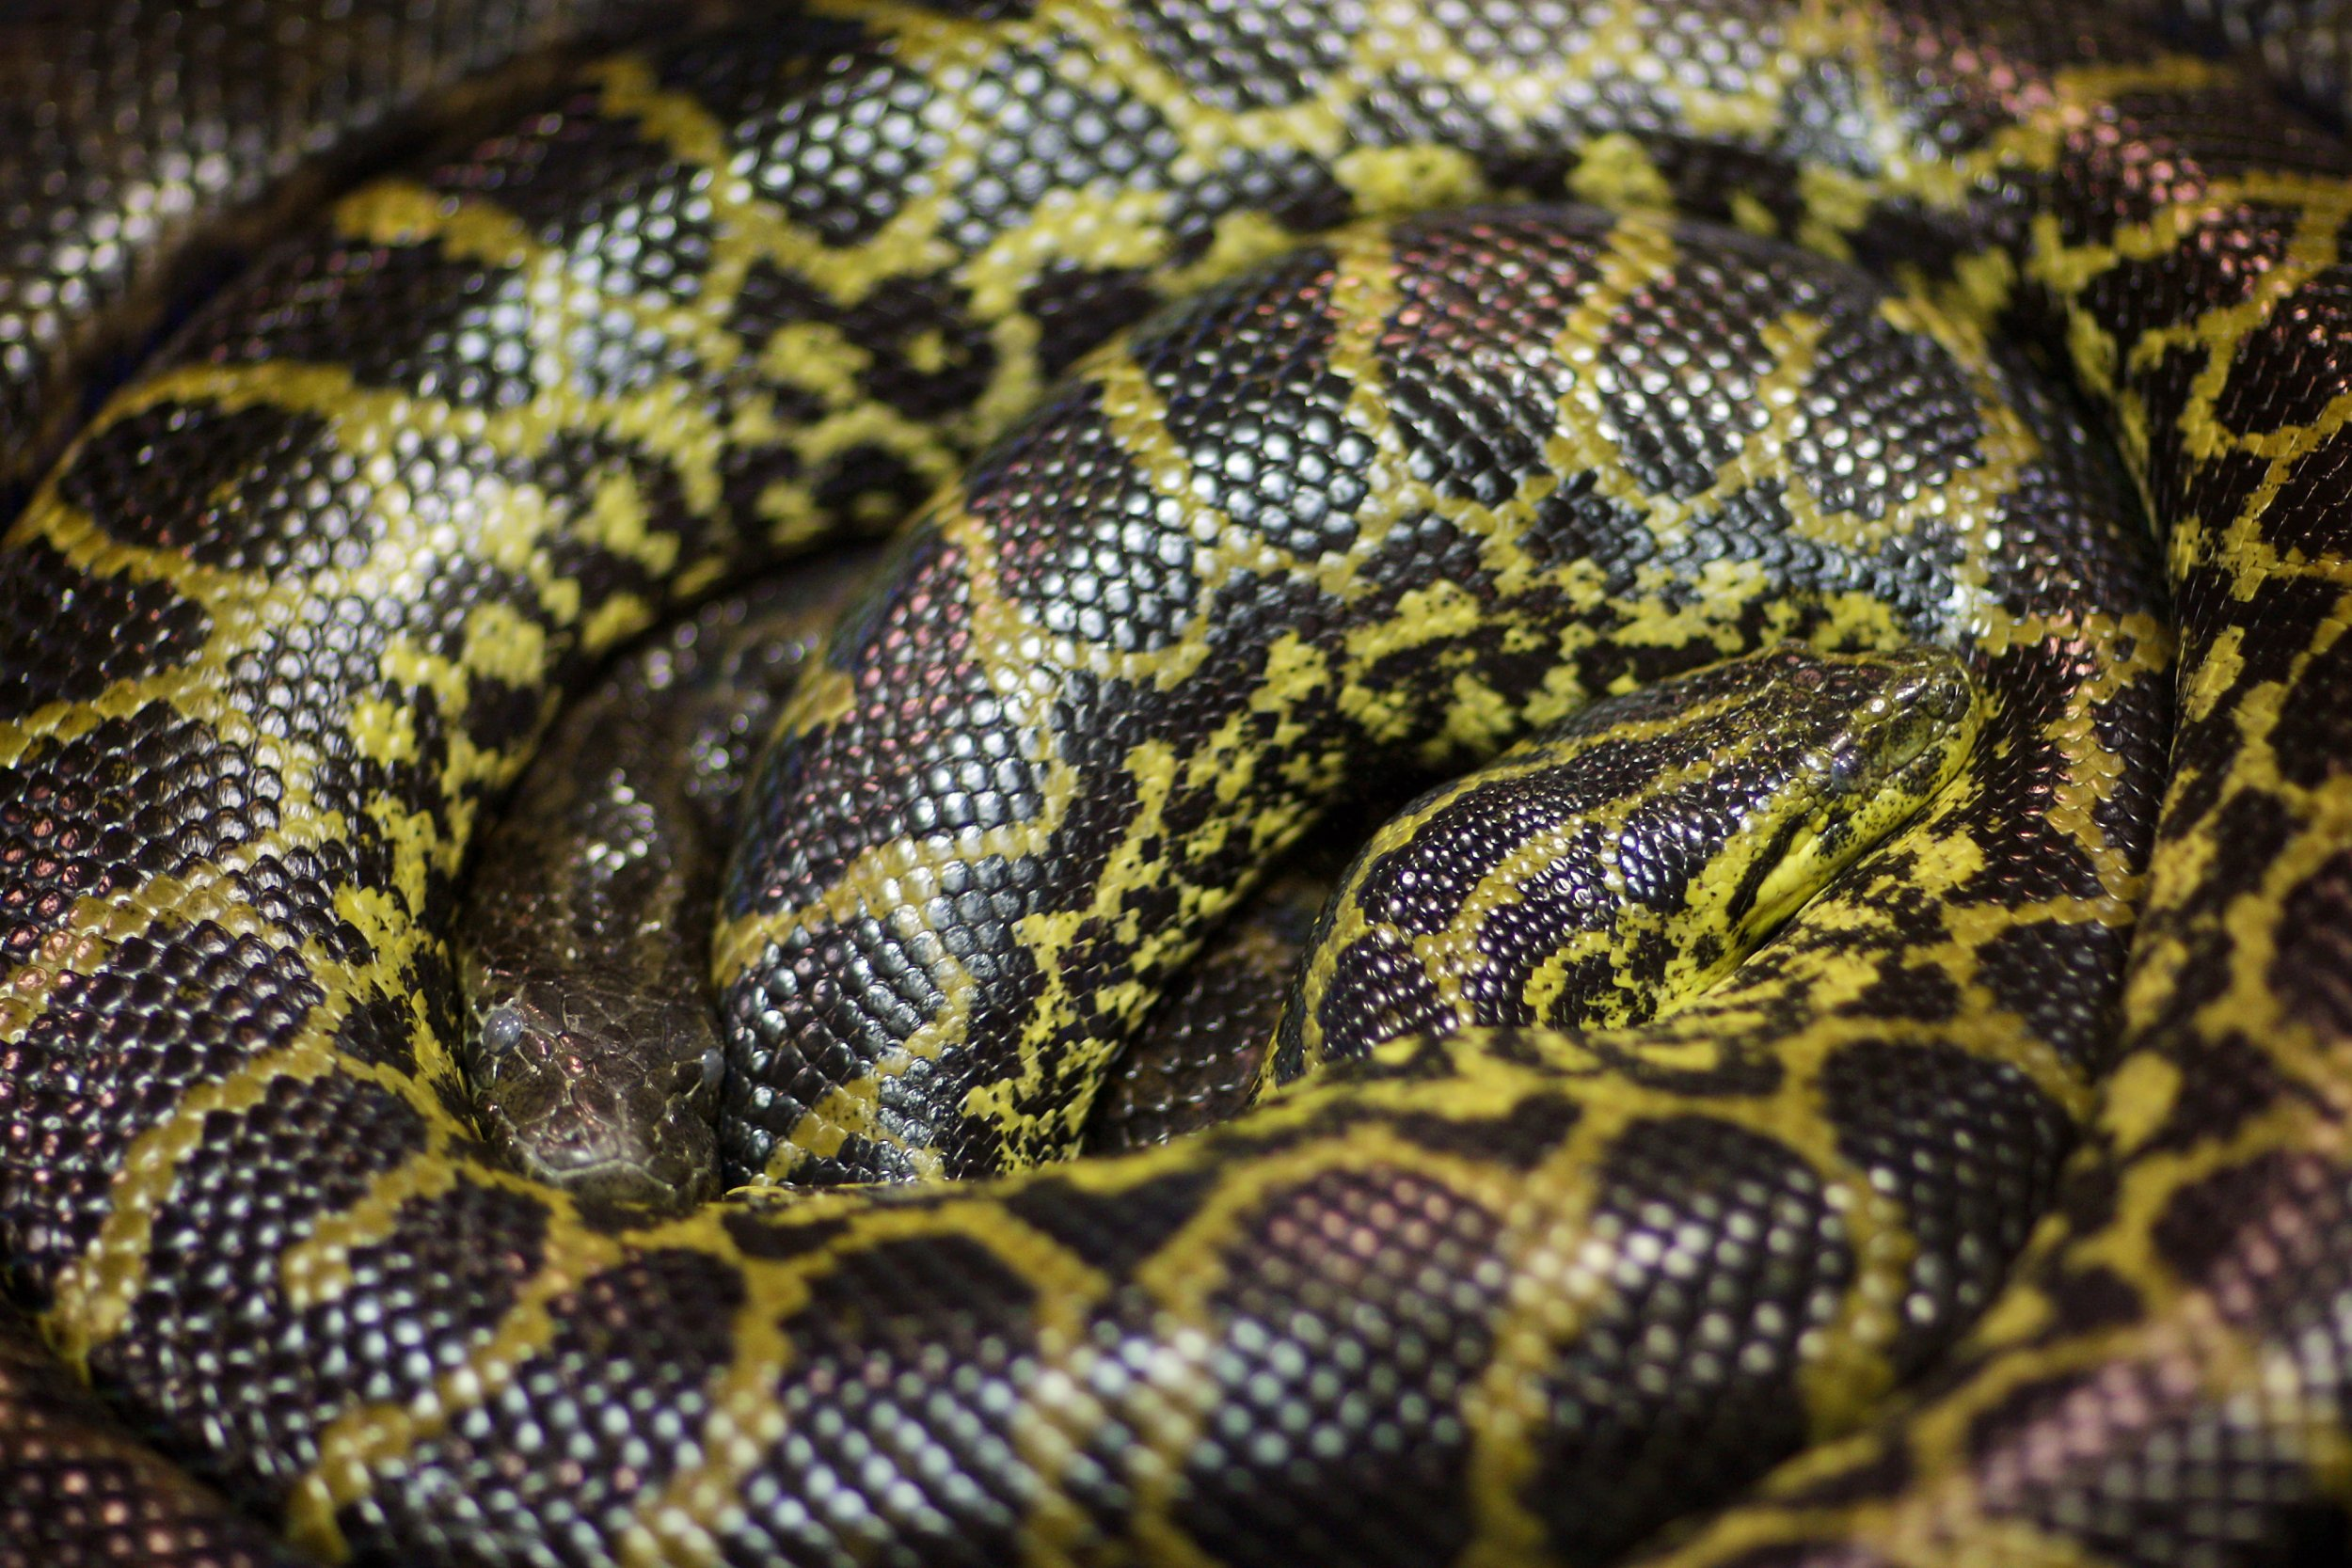 yellow-anacondas